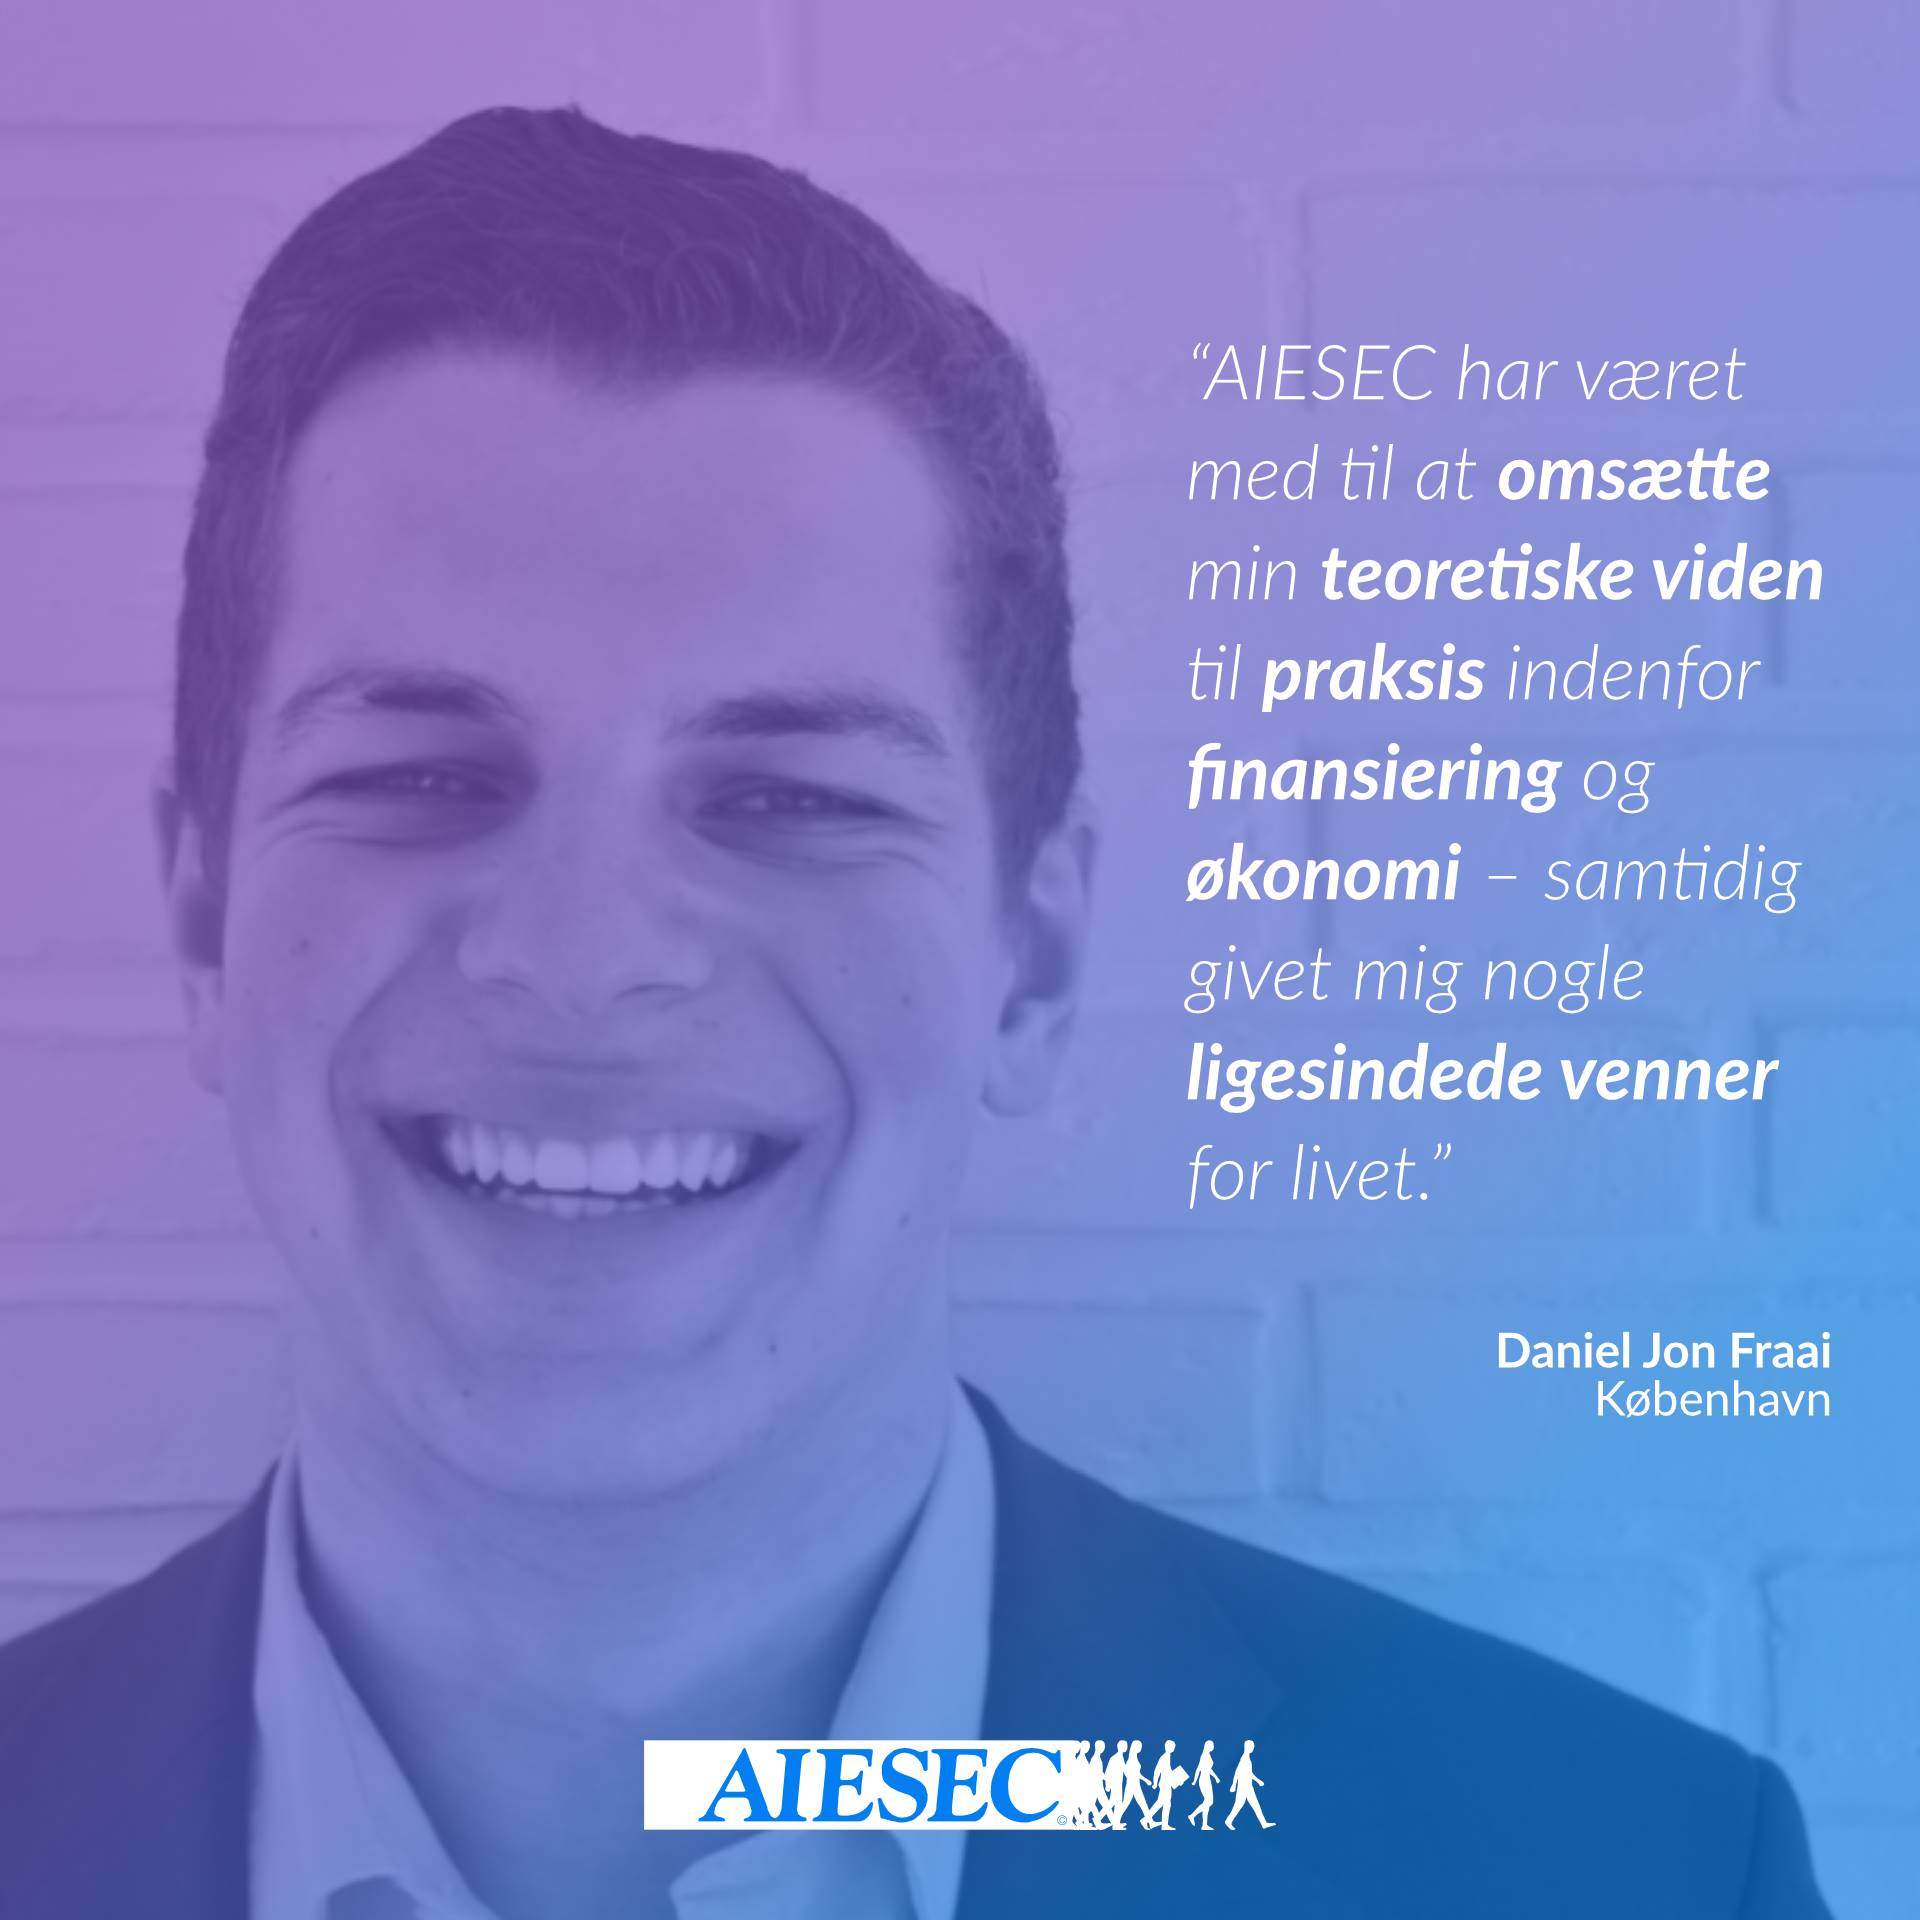 Get in touch - www.aiesec.dk / www.aiesec.orgEmail: cbs@aiesec.dk / lcp.cbs@aiesec.dkFacebook - InstagramStudent citizenship guidelines